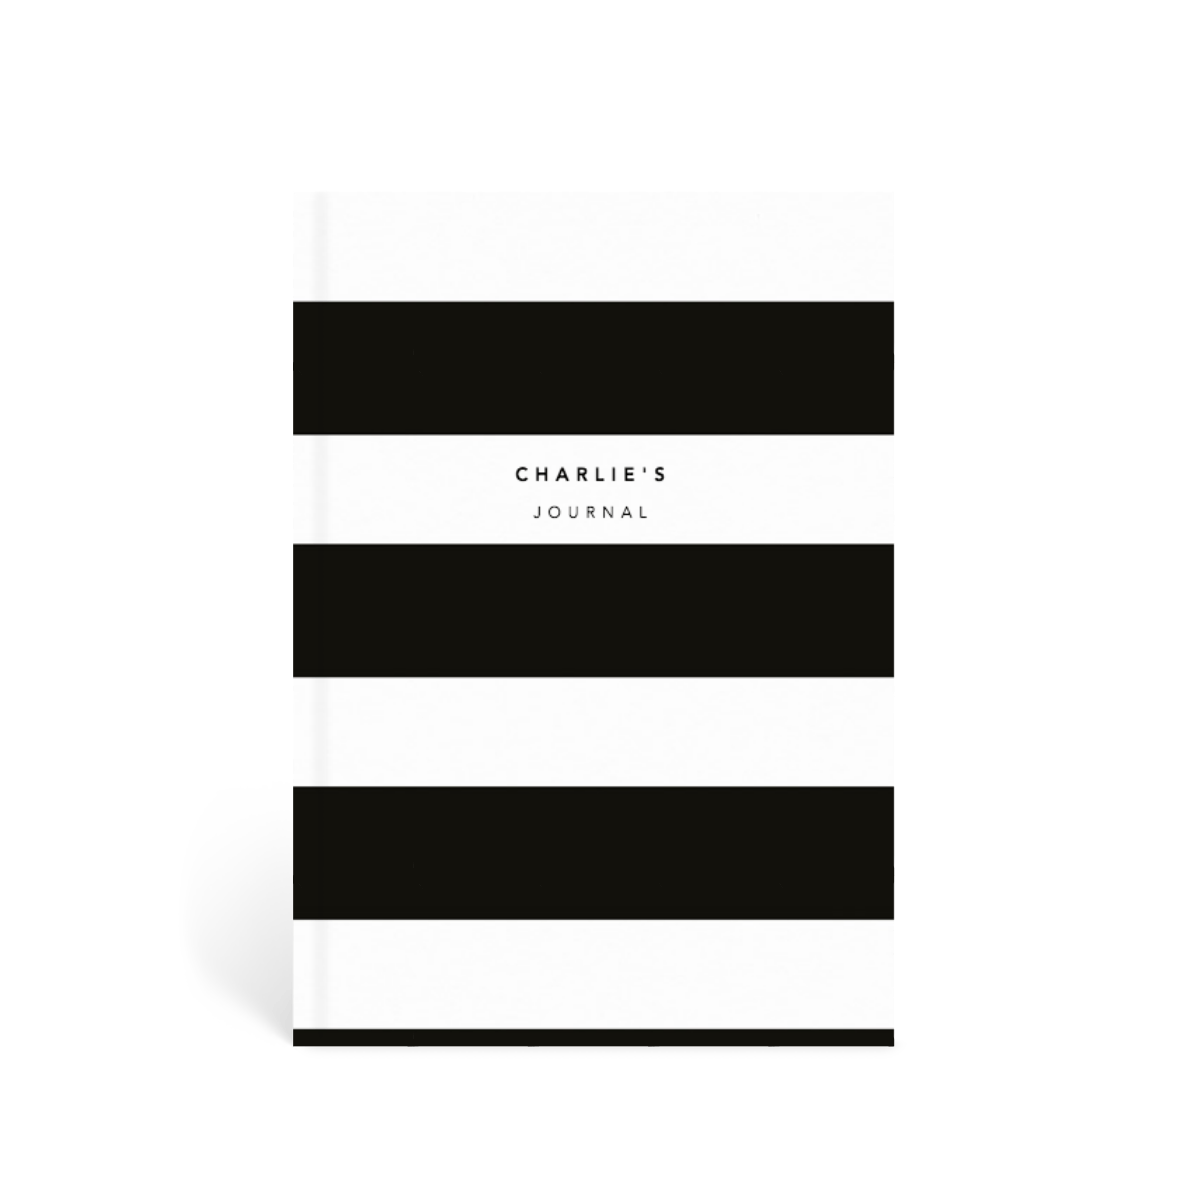 Https%3a%2f%2fwww.papier.com%2fproduct image%2f55983%2f25%2fblack stripe 13451 front 1542369333.png?ixlib=rb 1.1